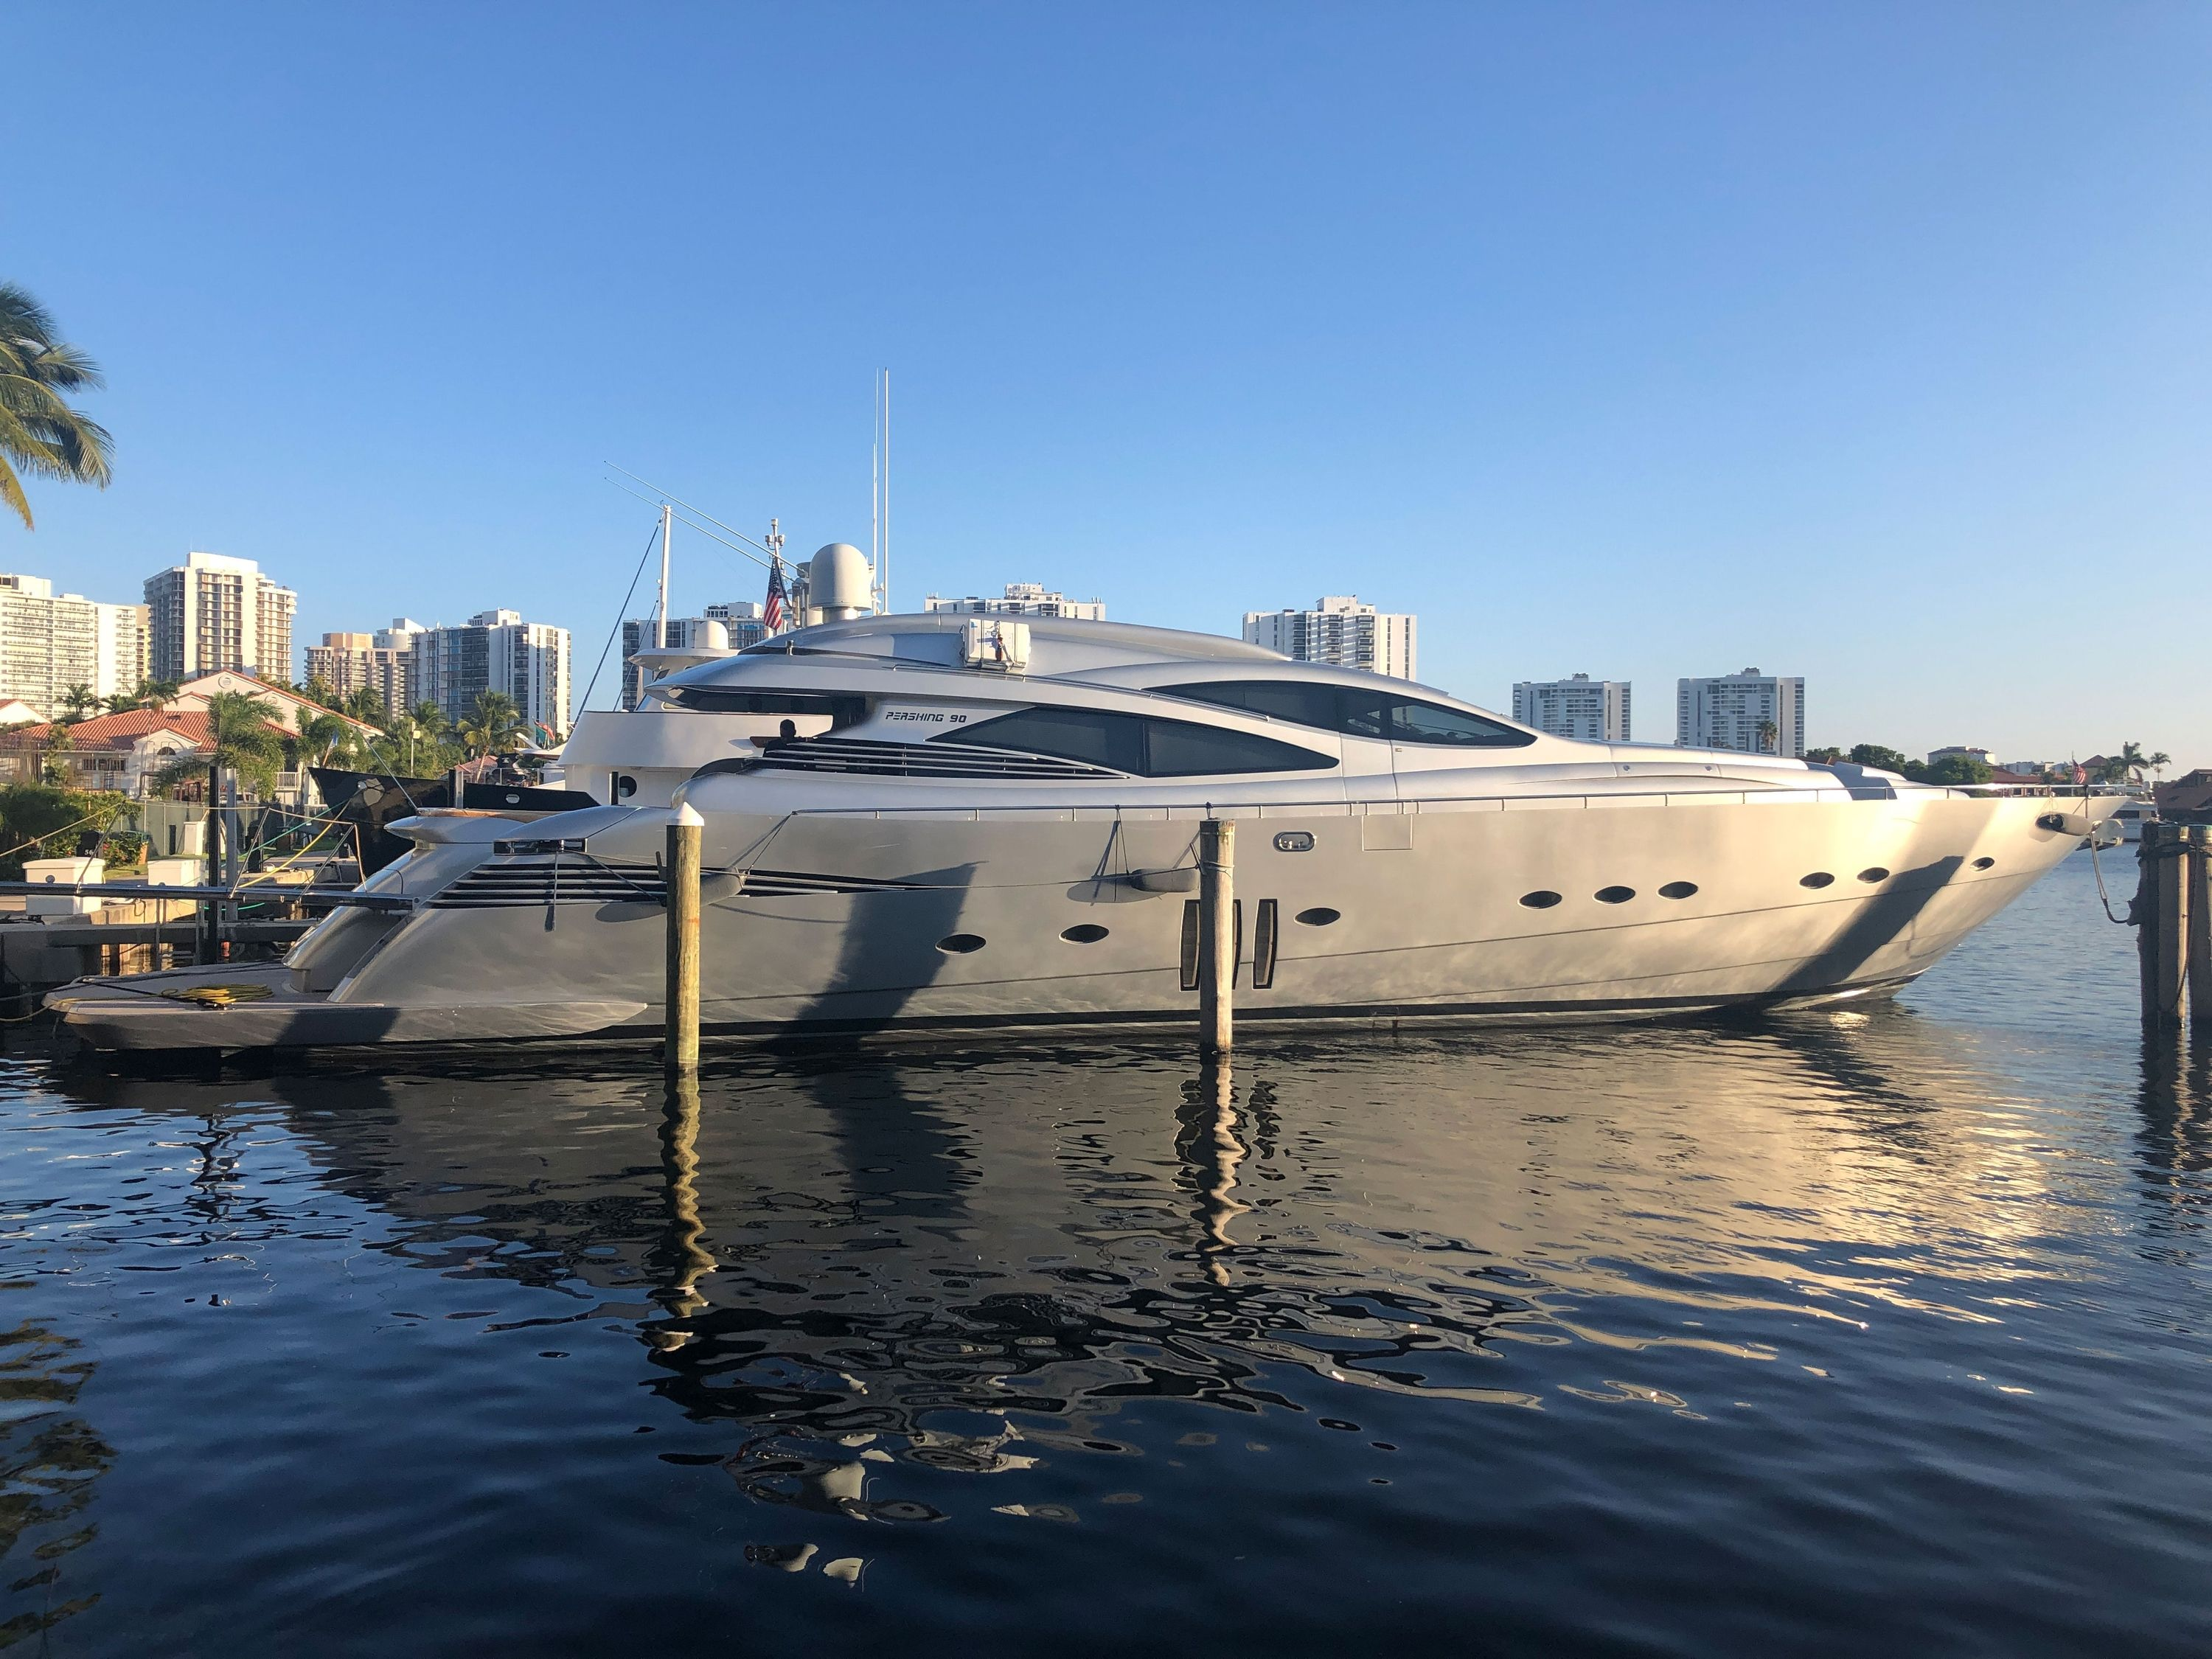 Pershing 90` - Day Charter - Miami - Ft Lauderdale